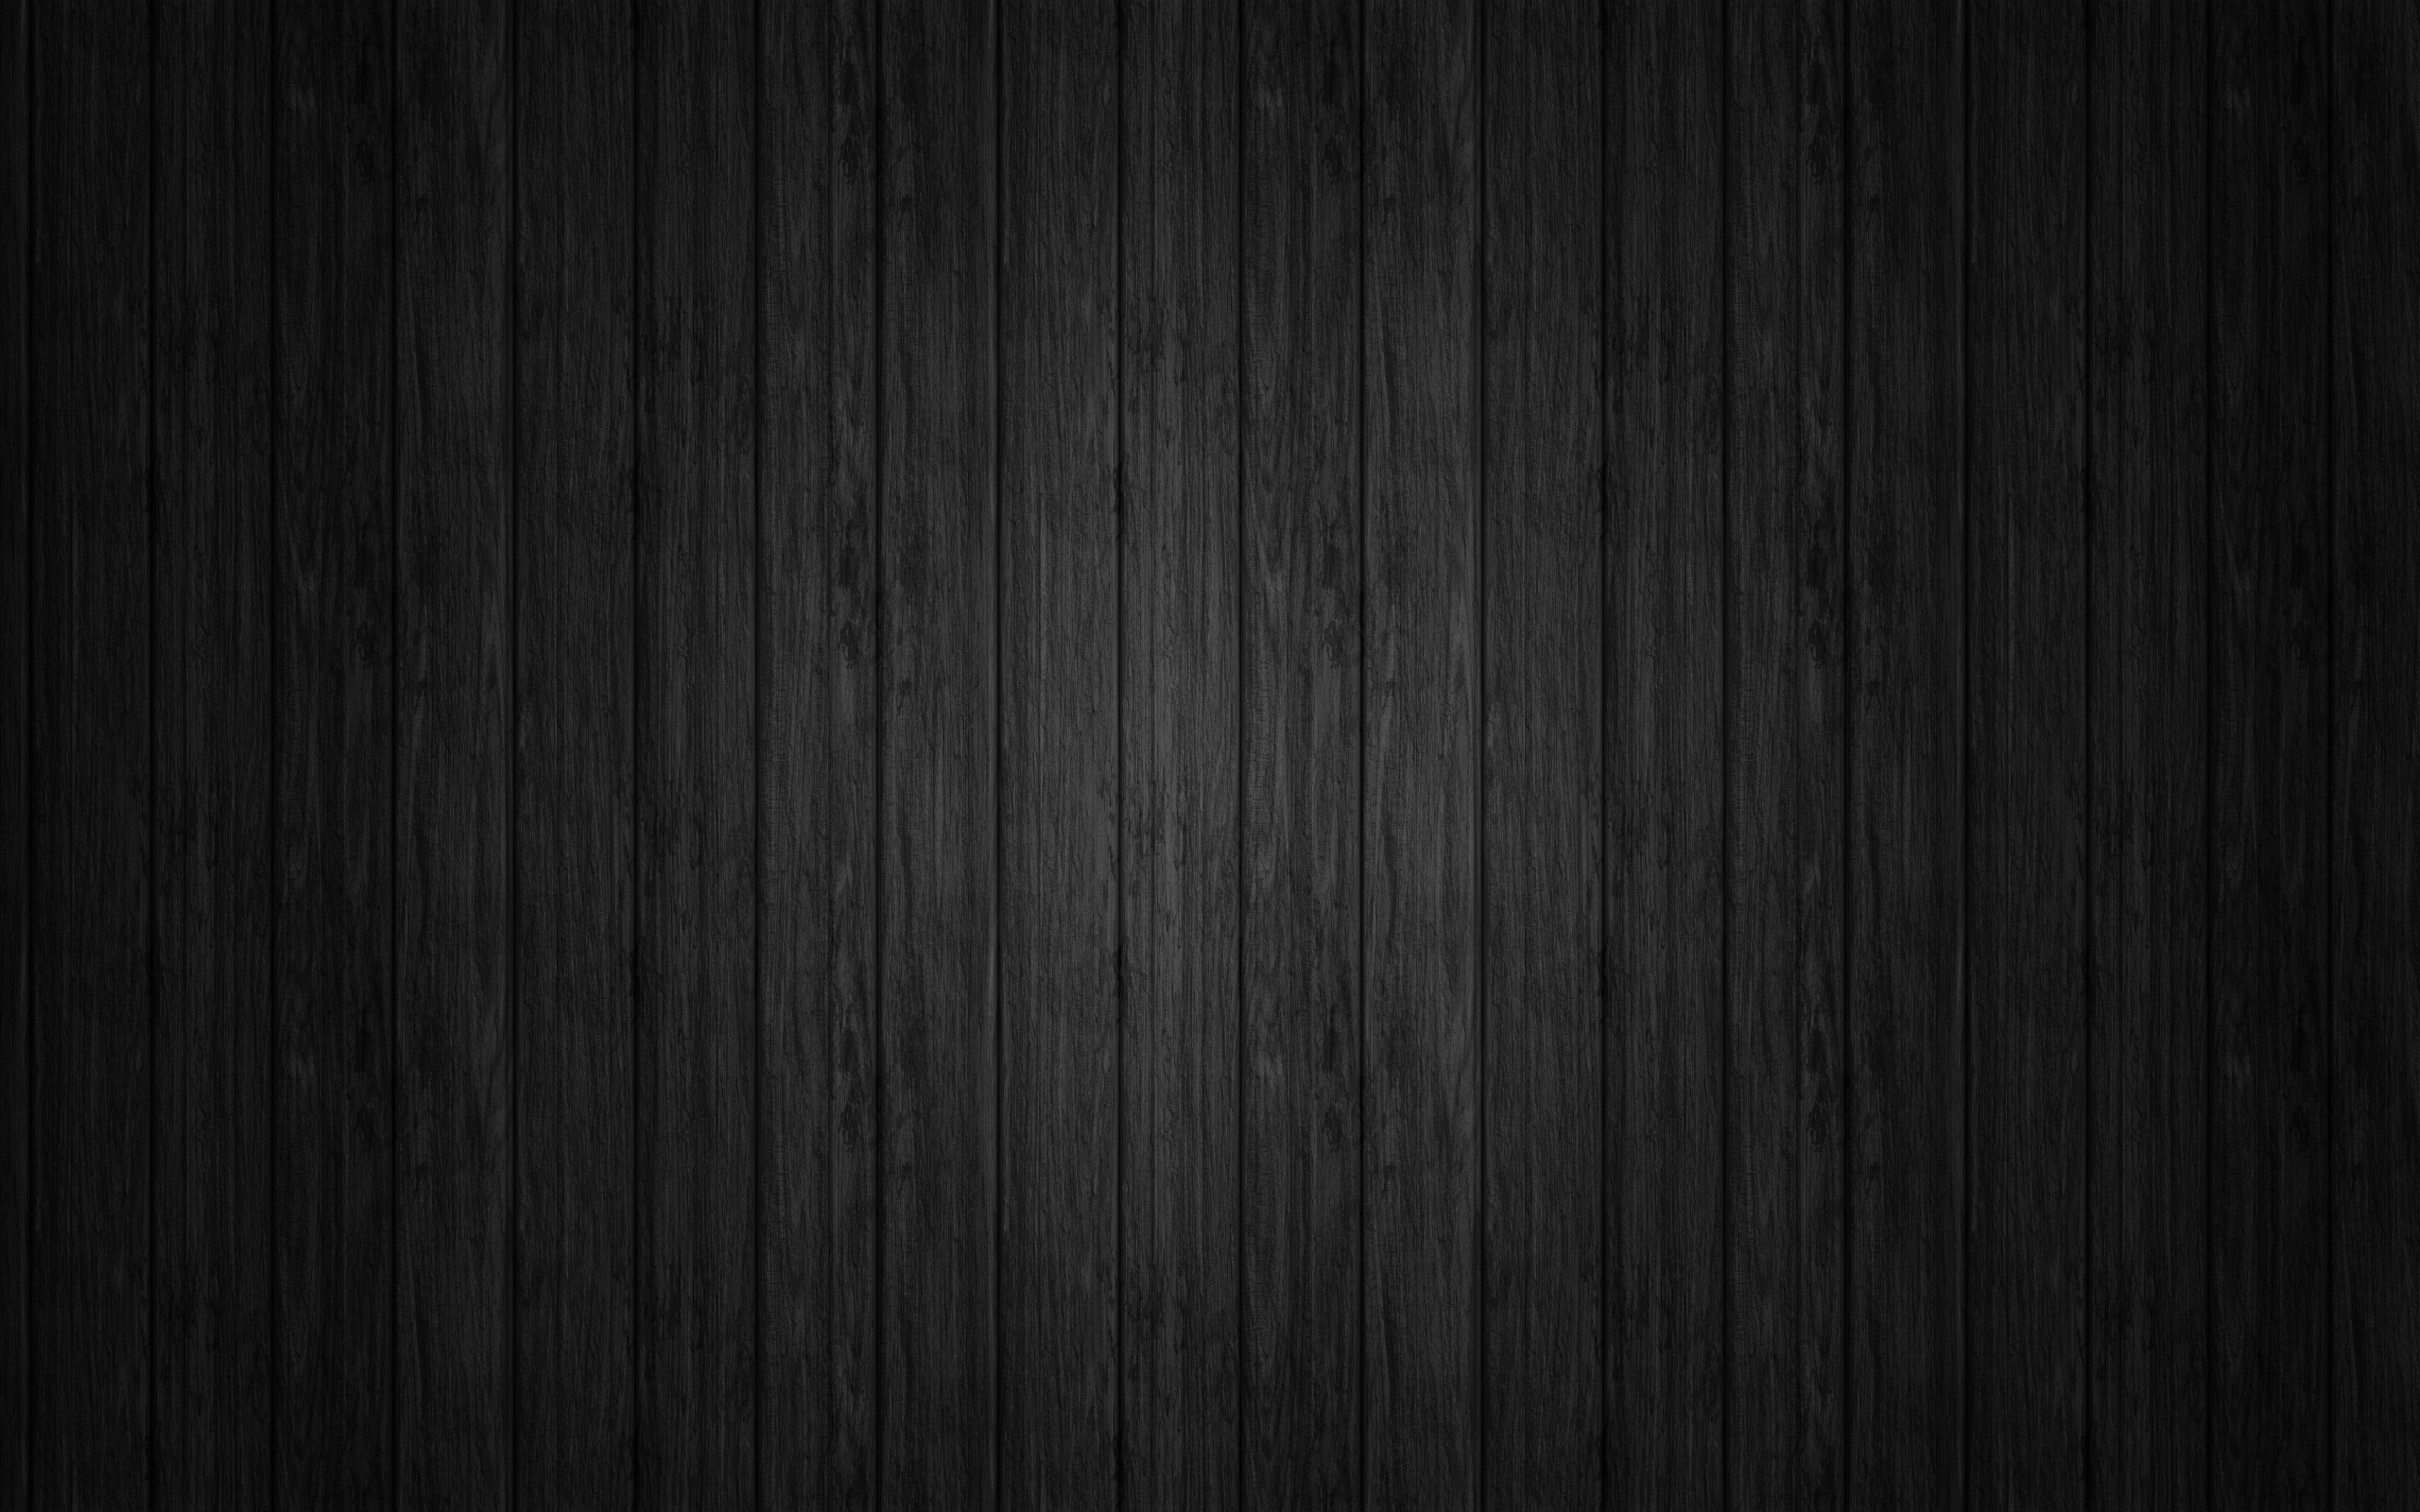 Black Background Wallpaper 2560x1600 Black Background Wood 2560x1600